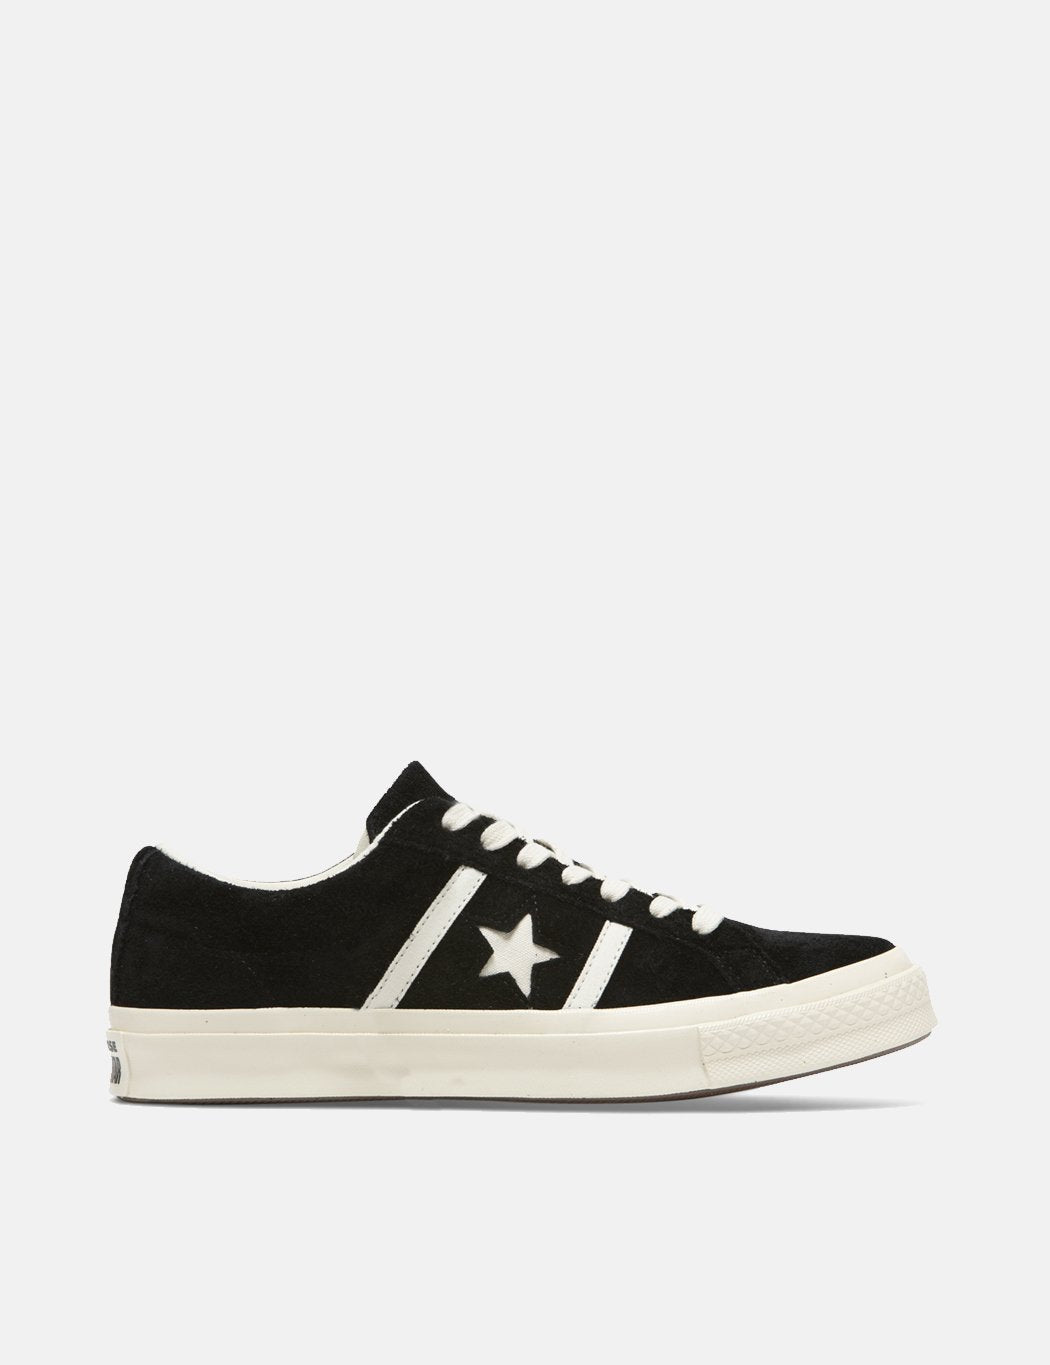 Converse One Star Academy Low Top (164525C) - Schwarz / Reiher / Reiher